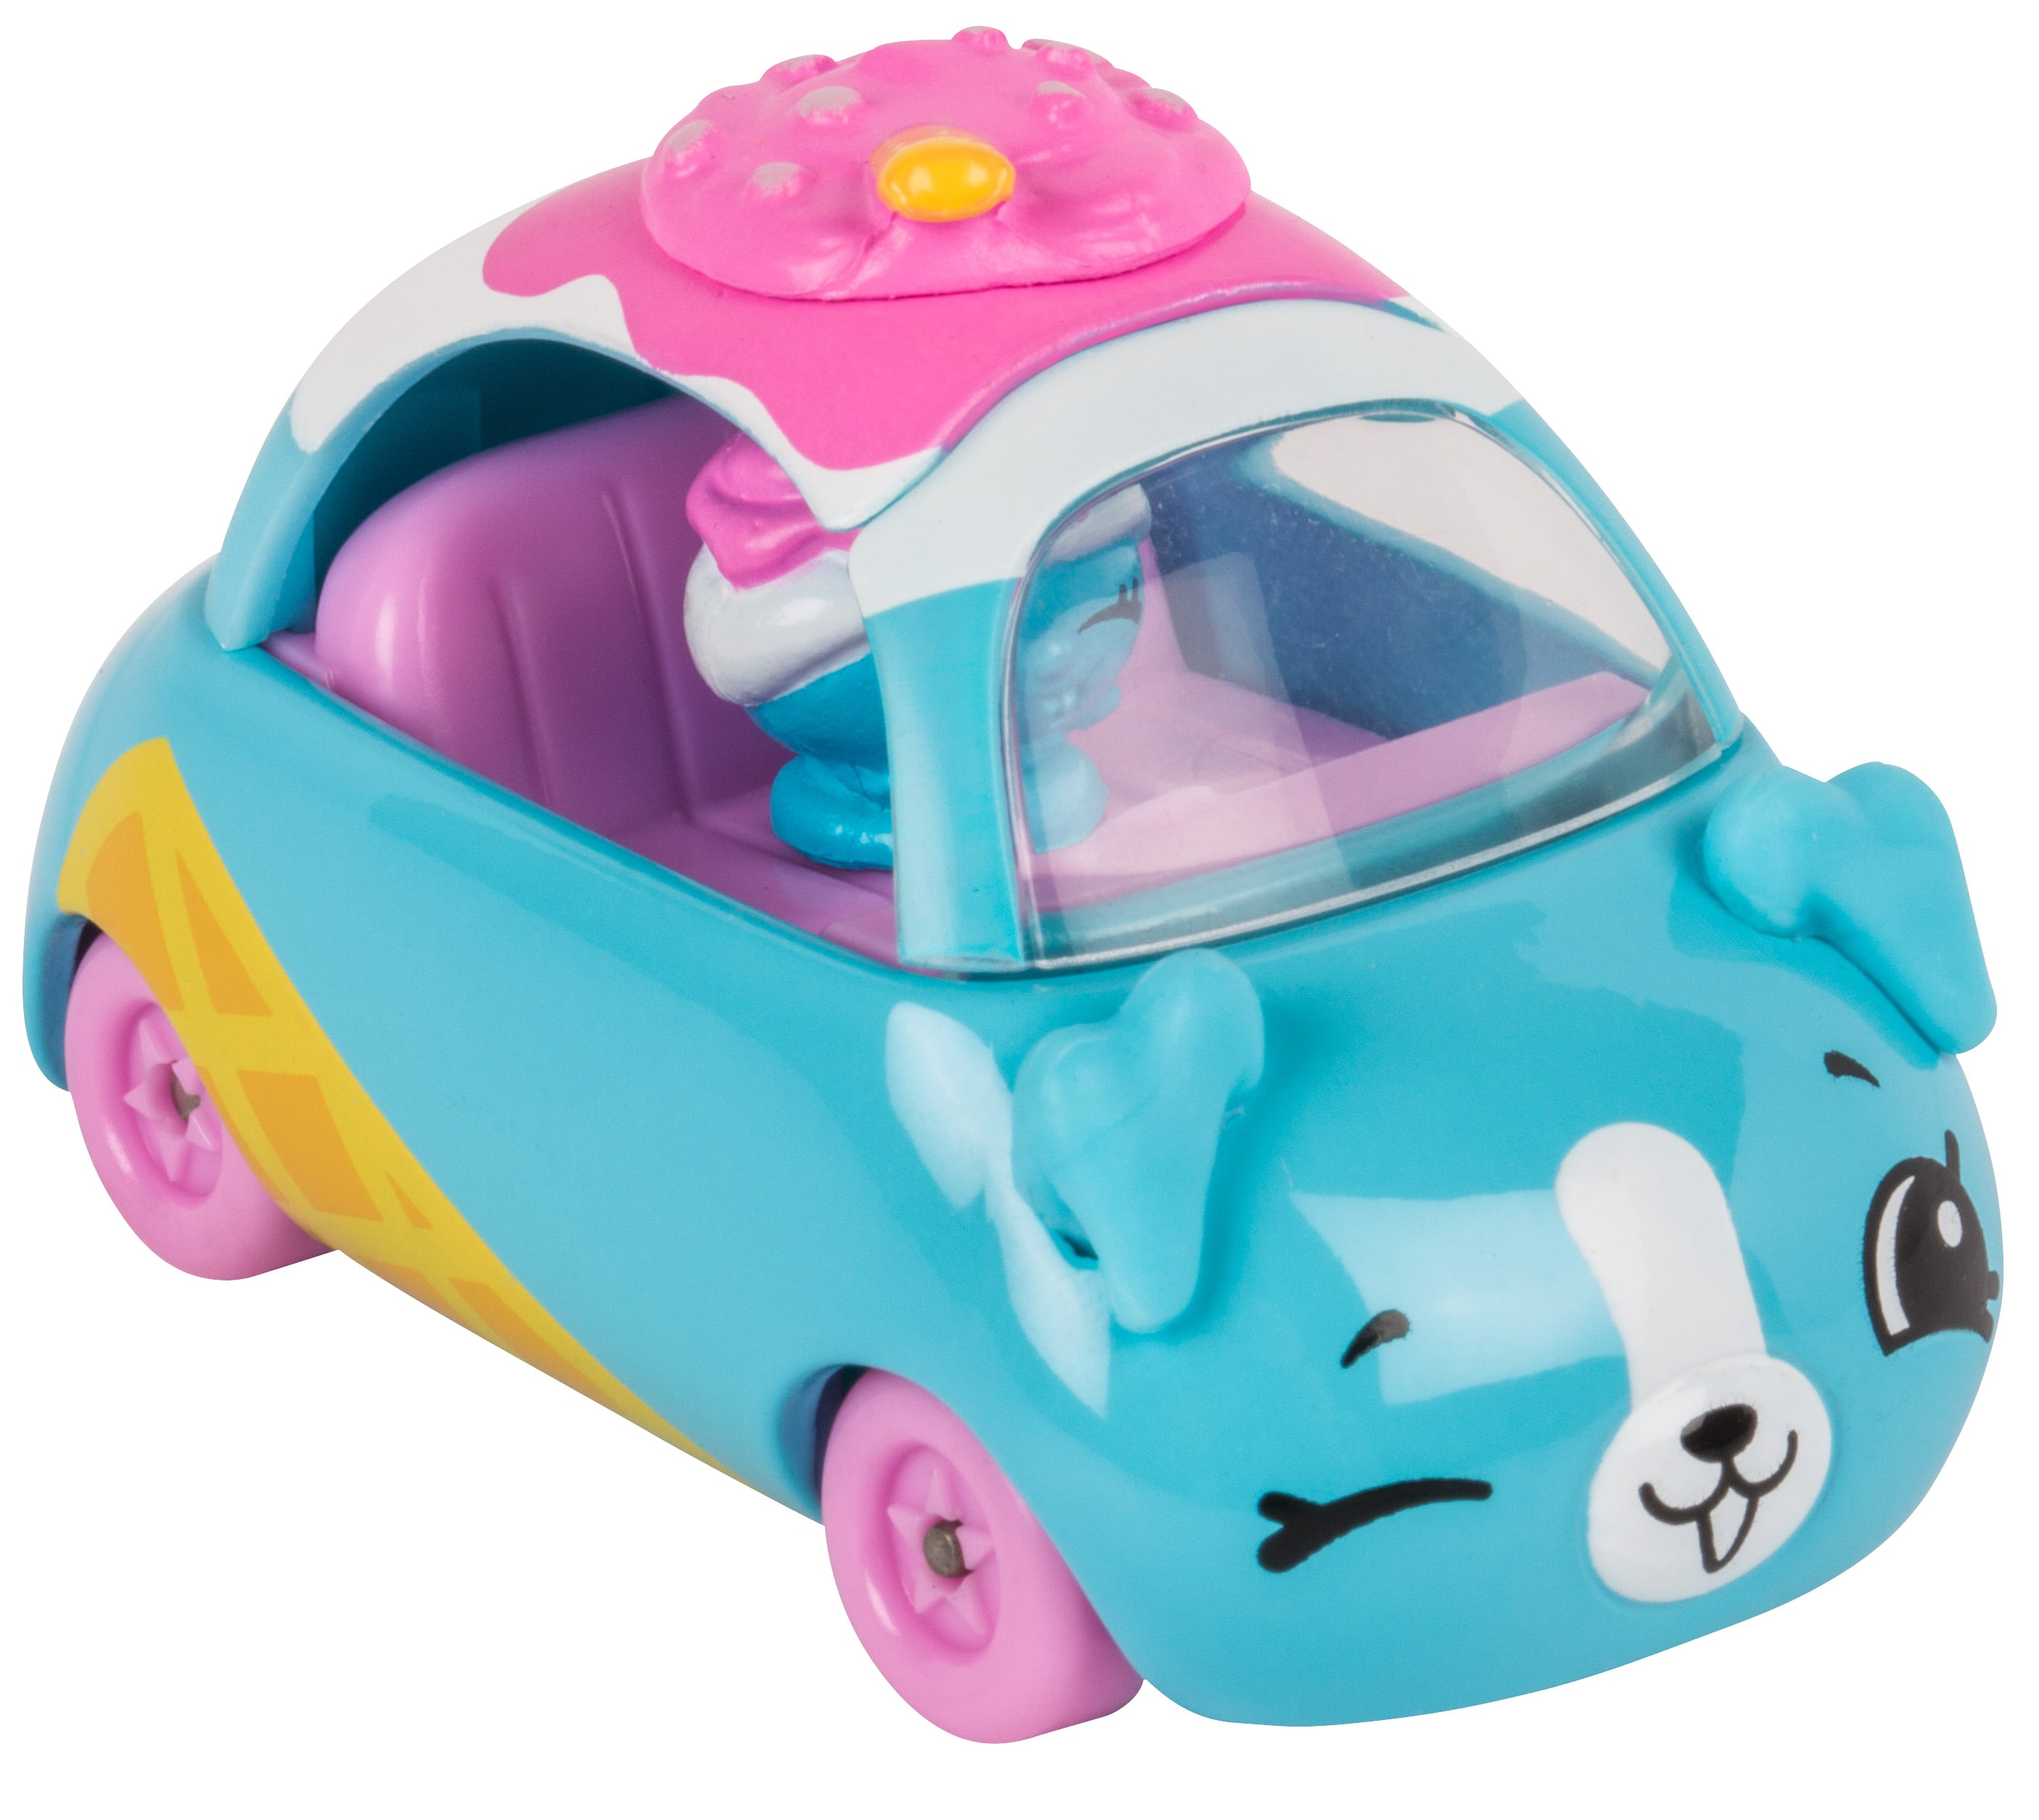 Shopkins Cutie Cars in Stock at Toys R Us on some cars Shopkins Cutie Cars in Stock at Toys R Us on some cars - Slickdeals.netShopkins Cutie Cars in Stock at Toys R Us on some cars 10-16-2017 - 웹